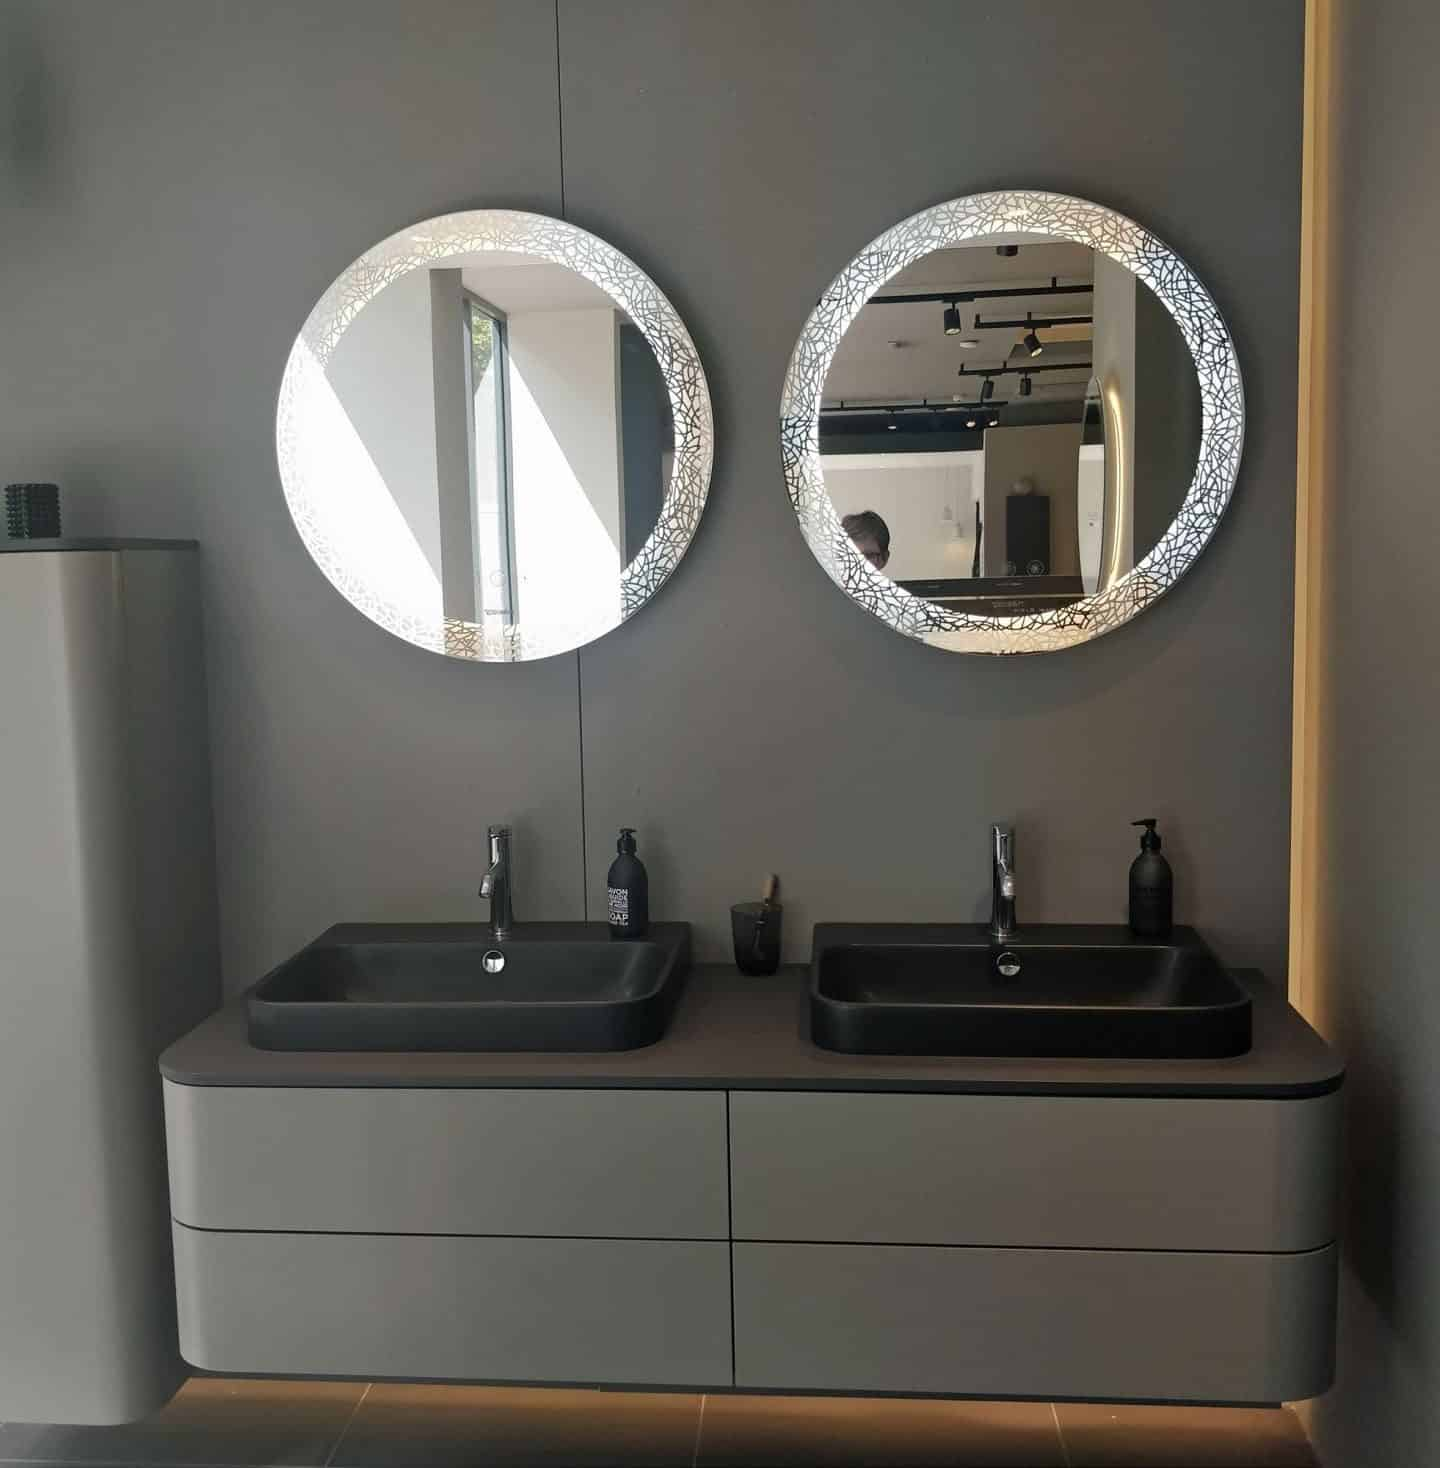 Happy D.2 Plus washbasins in the Duravit Showroom in Clerkenwell